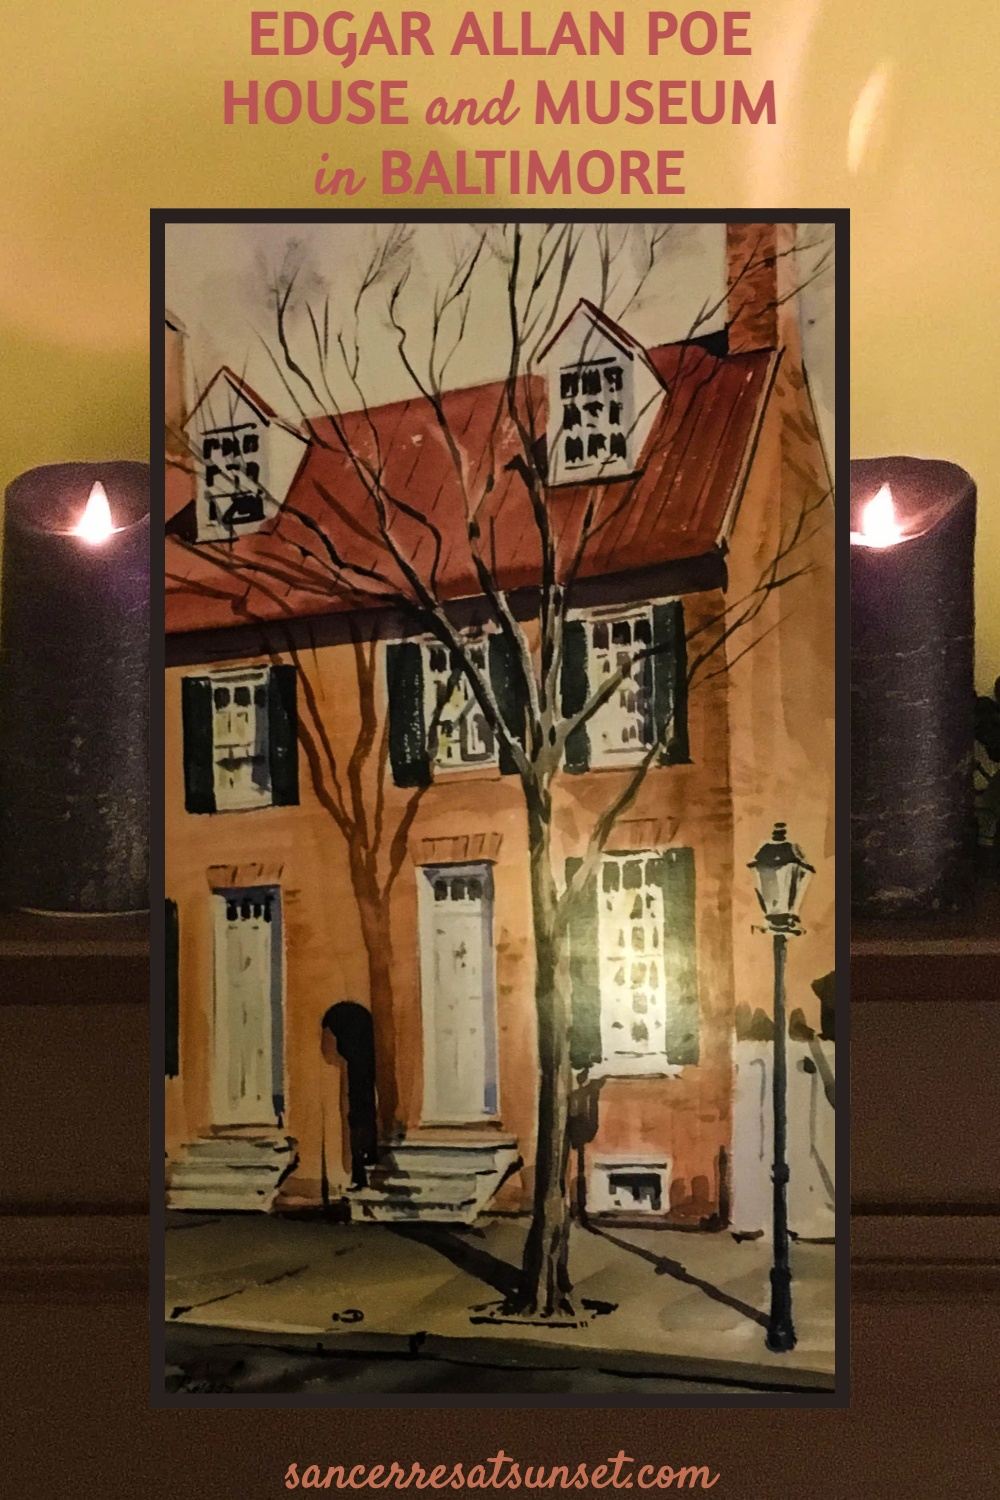 Edgar Allan Poe House and Museum in Baltimore